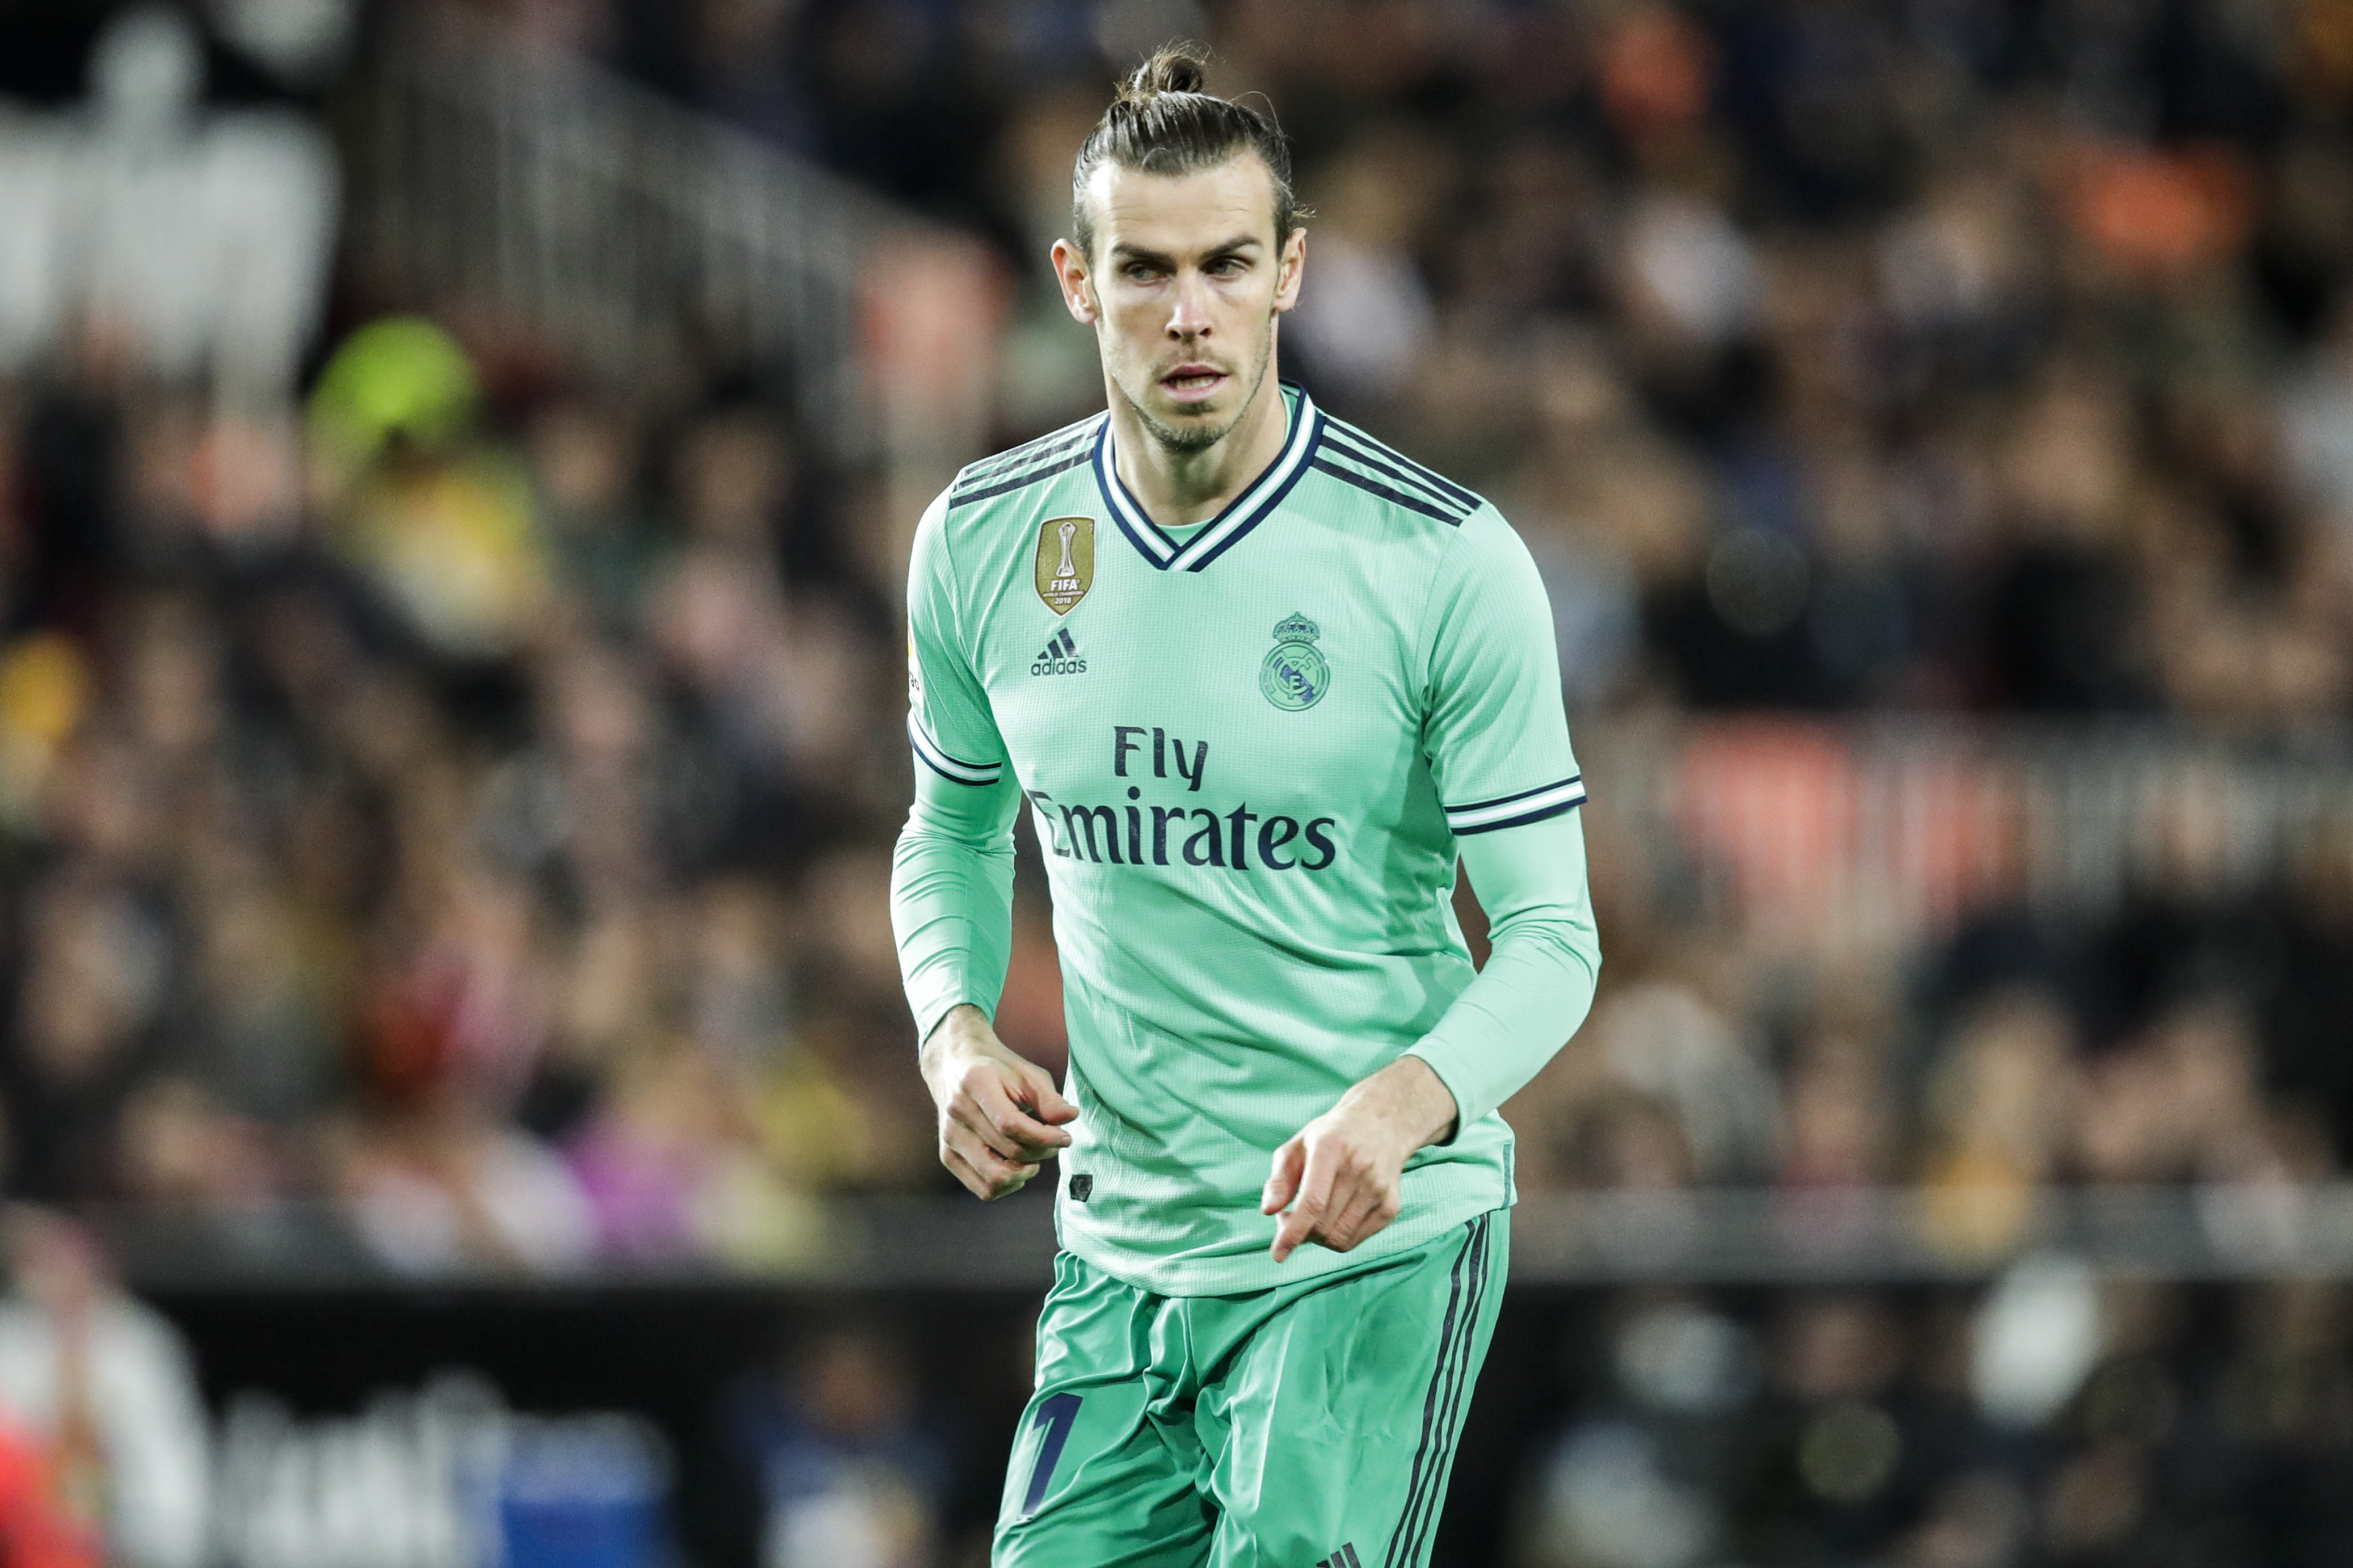 Real Madrid: It's time for Gareth Bale to be the hero he was meant to be